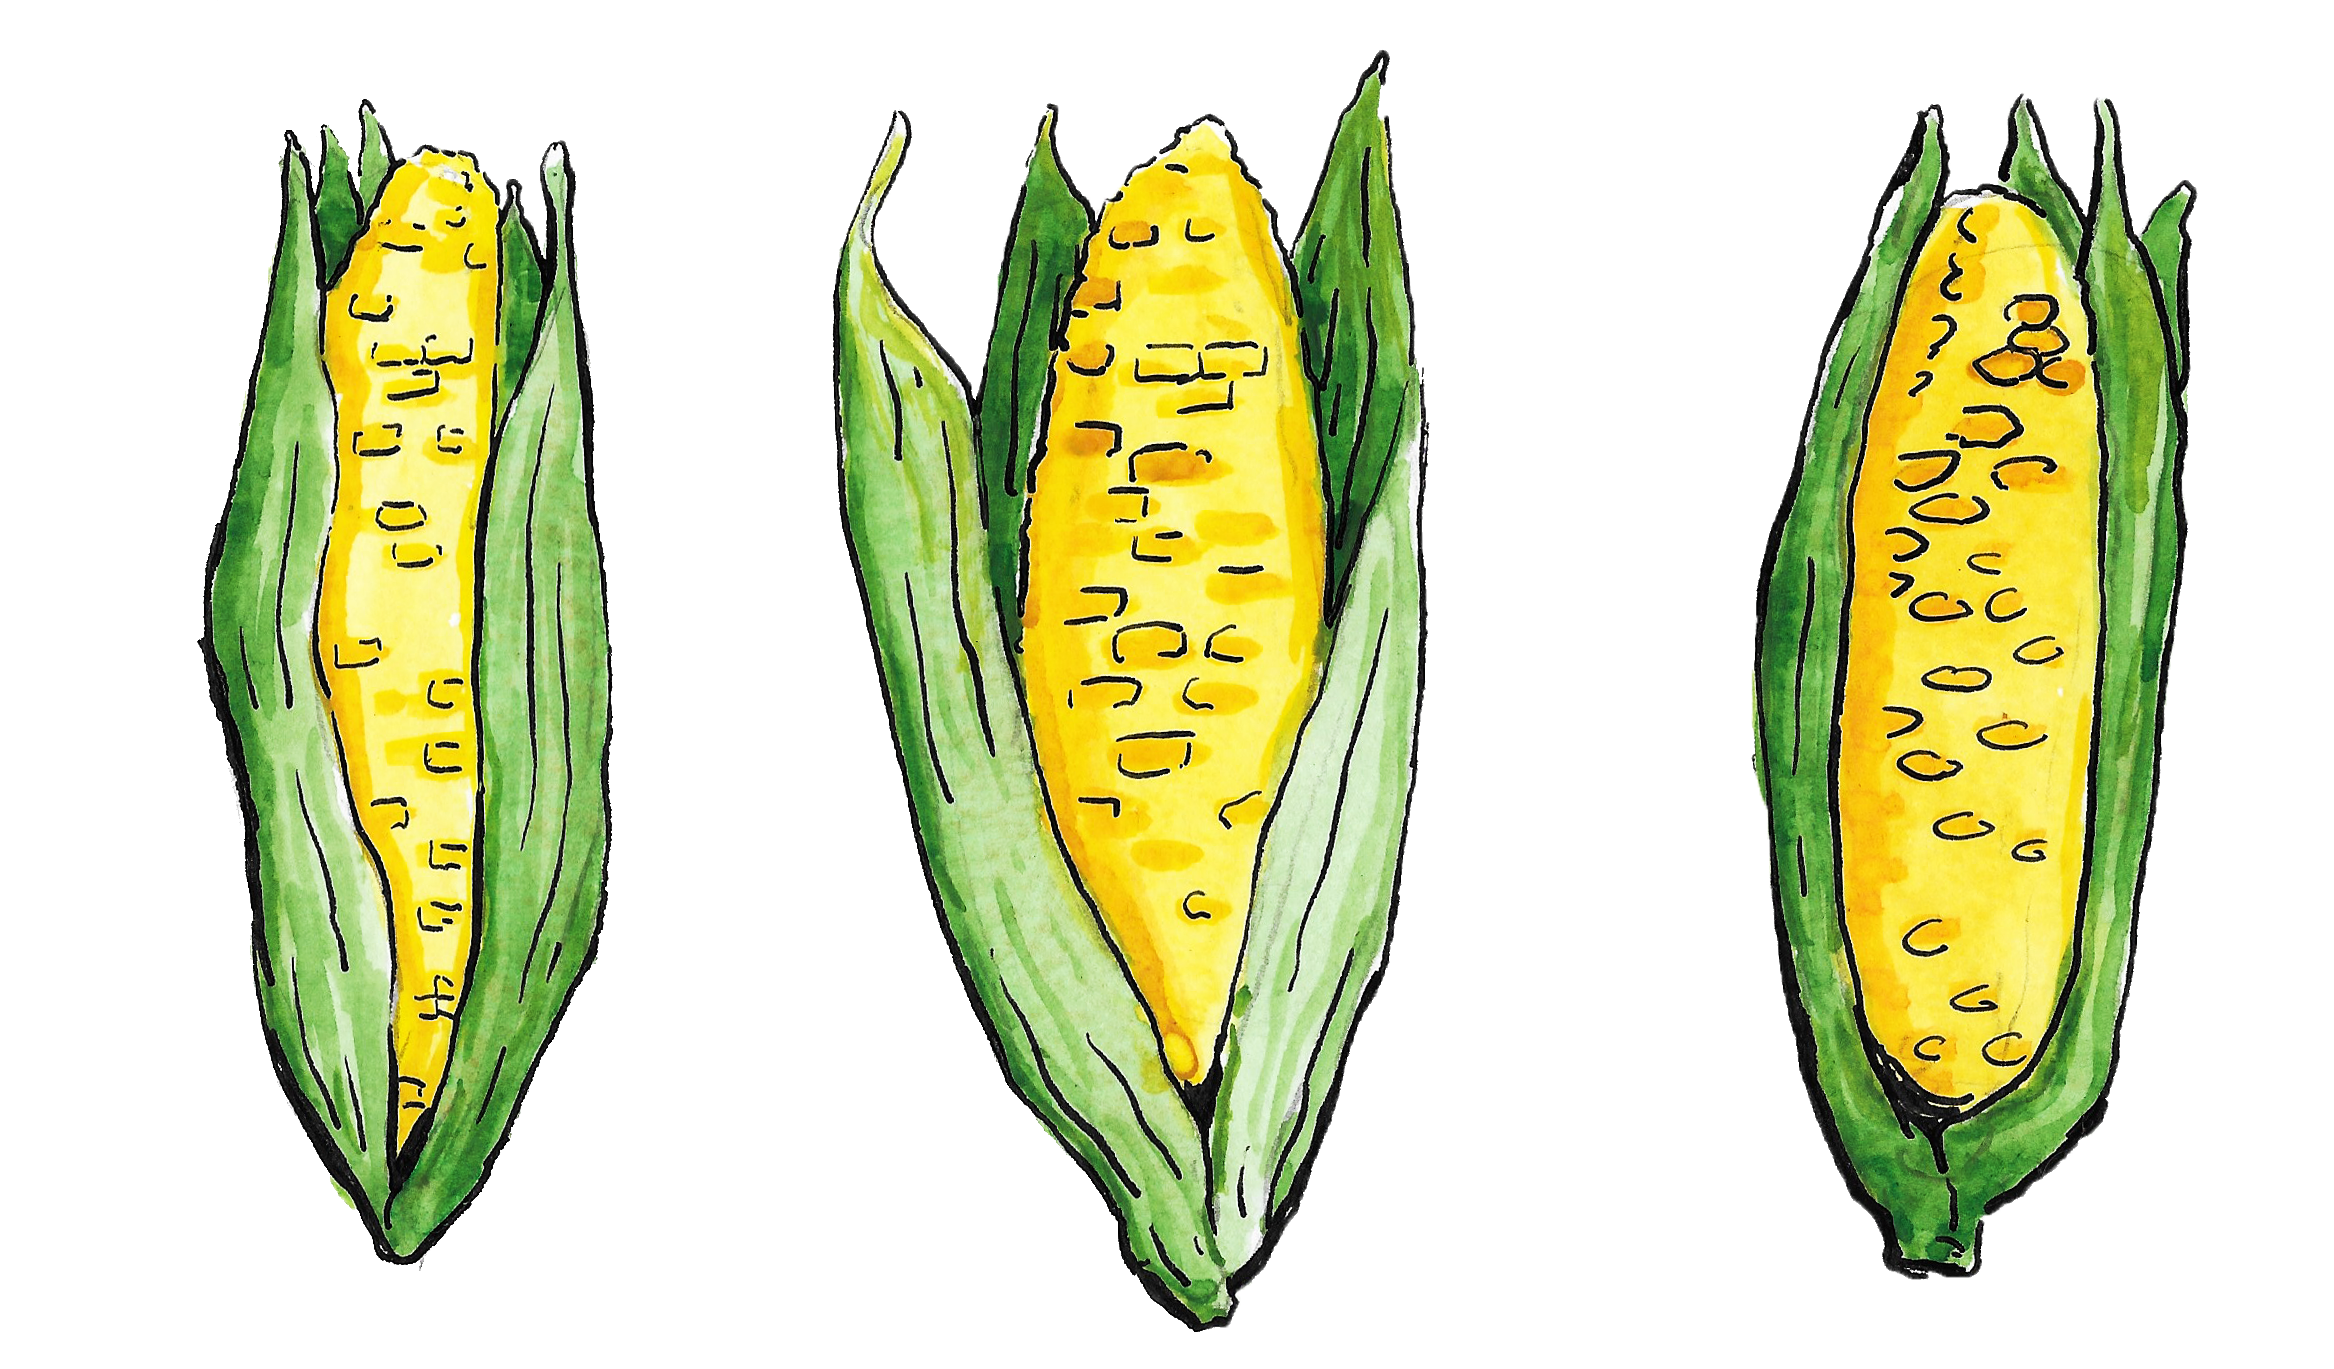 An illustration showing three ears of corn.